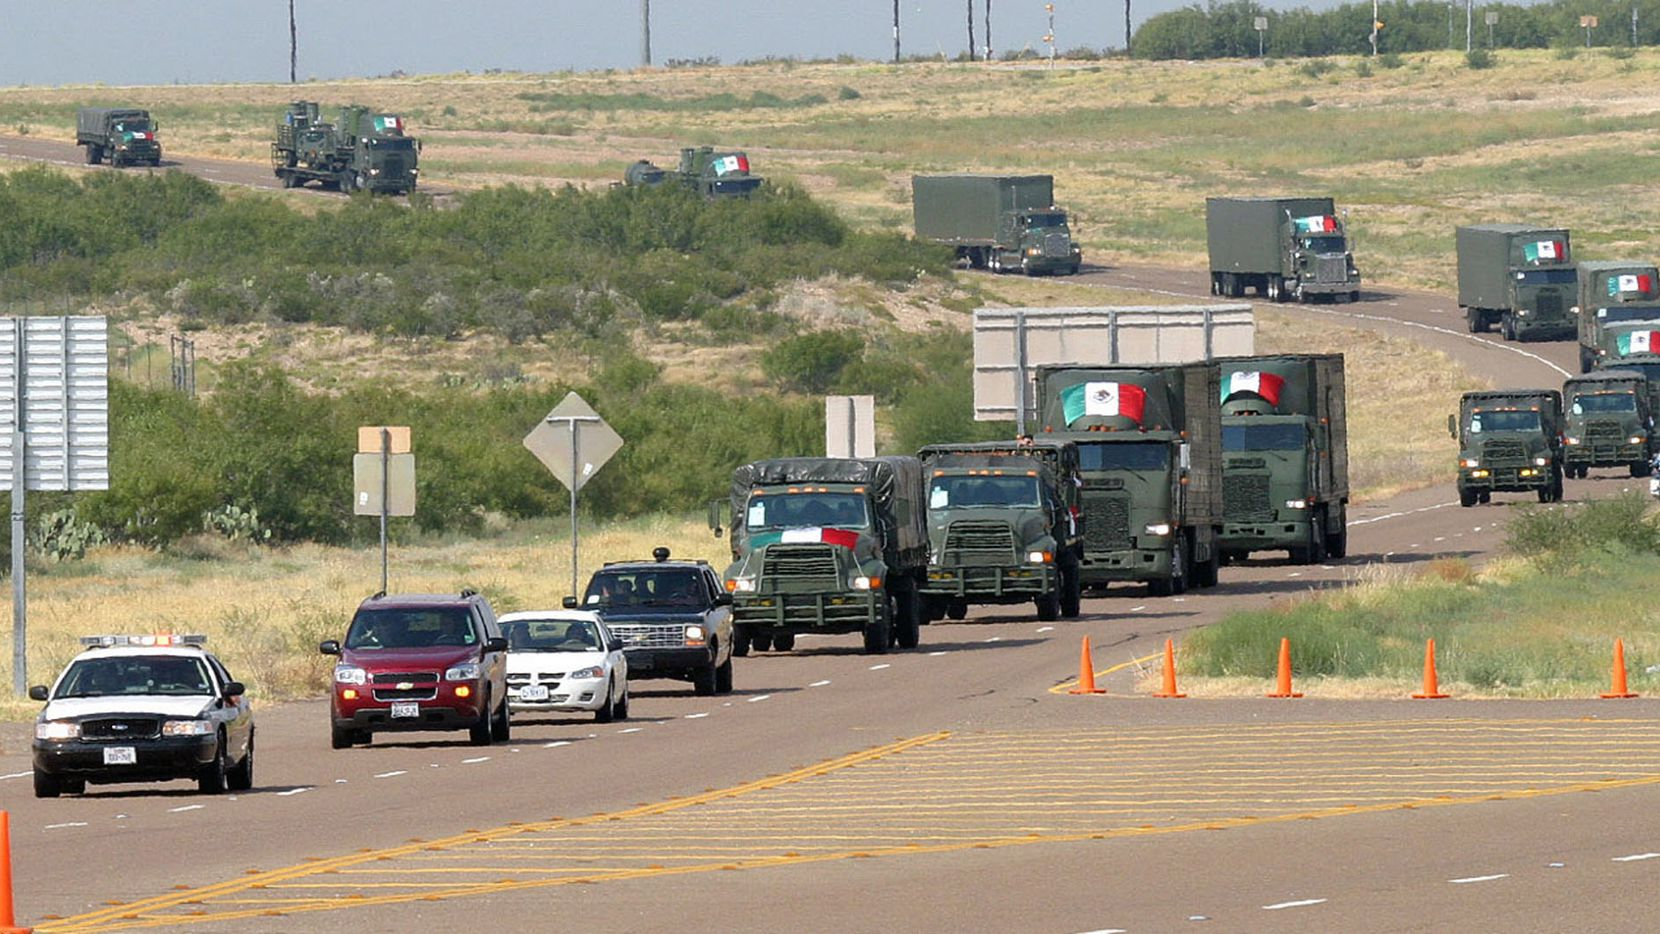 Texas Department of Public Safety troopers and Army personnel escorted a convoy of Mexican vehicles west of Laredo in September 2005 to help Hurricane Katrina evacuees in San Antonio. The convoy was the first Mexican military unit to operate on U.S. soil since 1846.